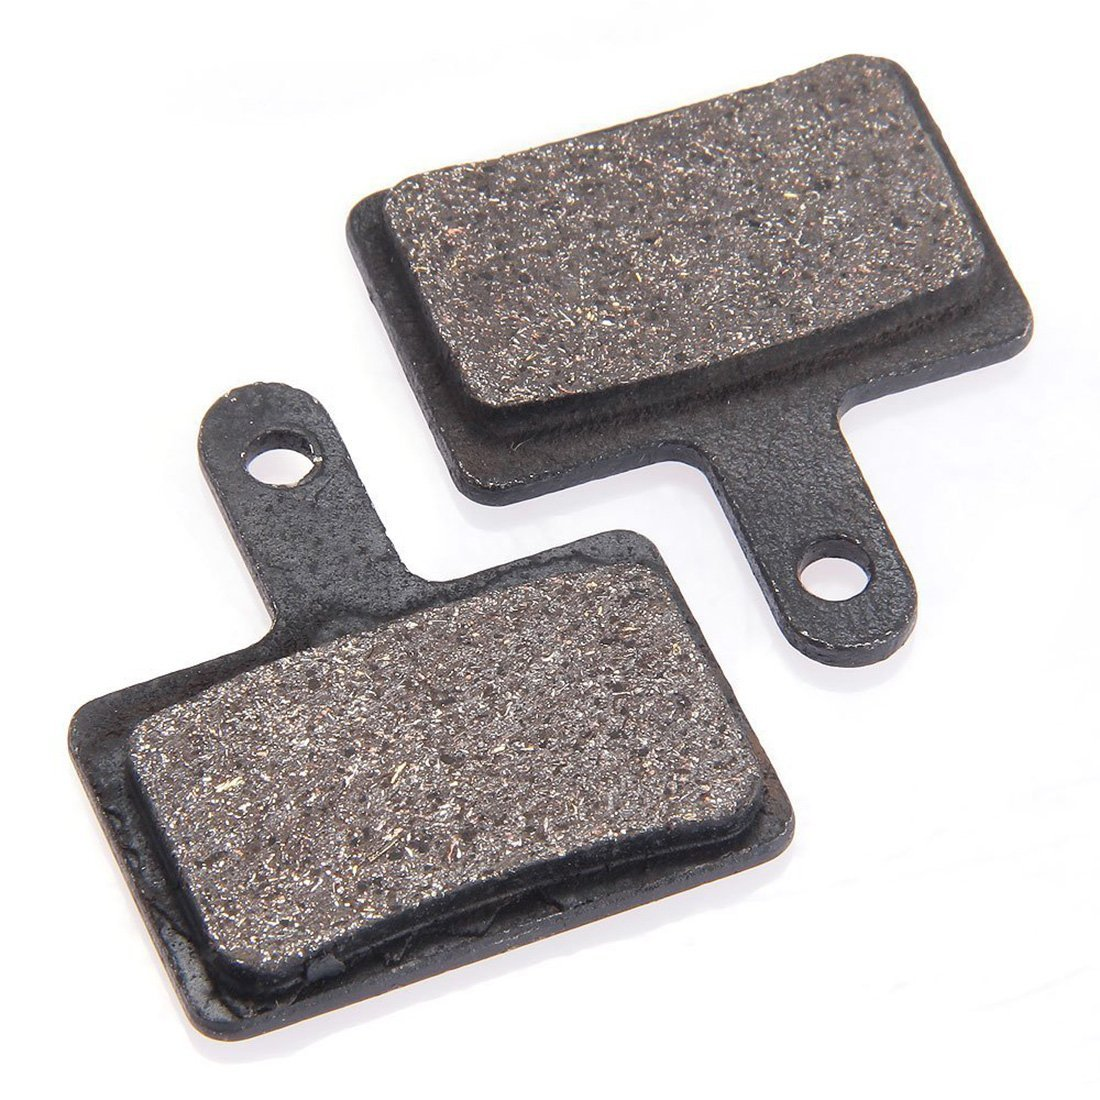 CY-Buity 2pcs Durable Square Disc Brake Pad For Mountain Road Bike Bicycle Cycling